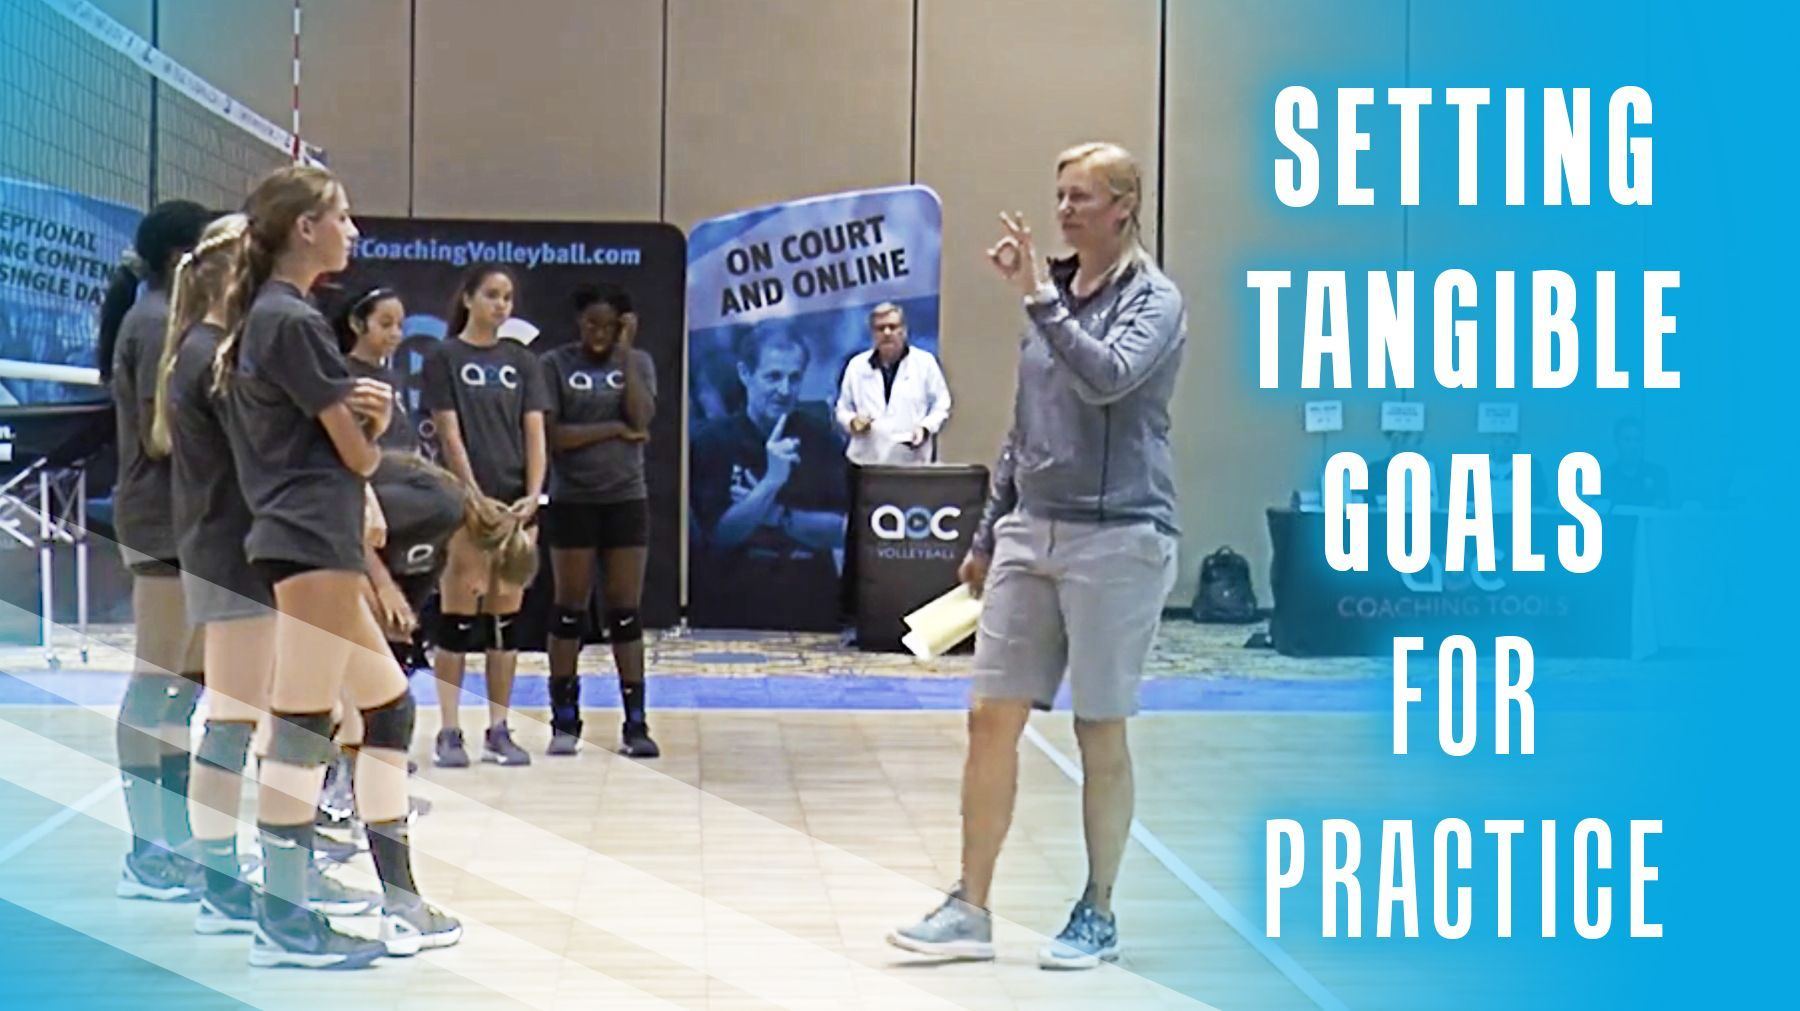 Setting Tangible Goals For Practice The Art Of Coaching Volleyball Coaching Volleyball Goals Practice